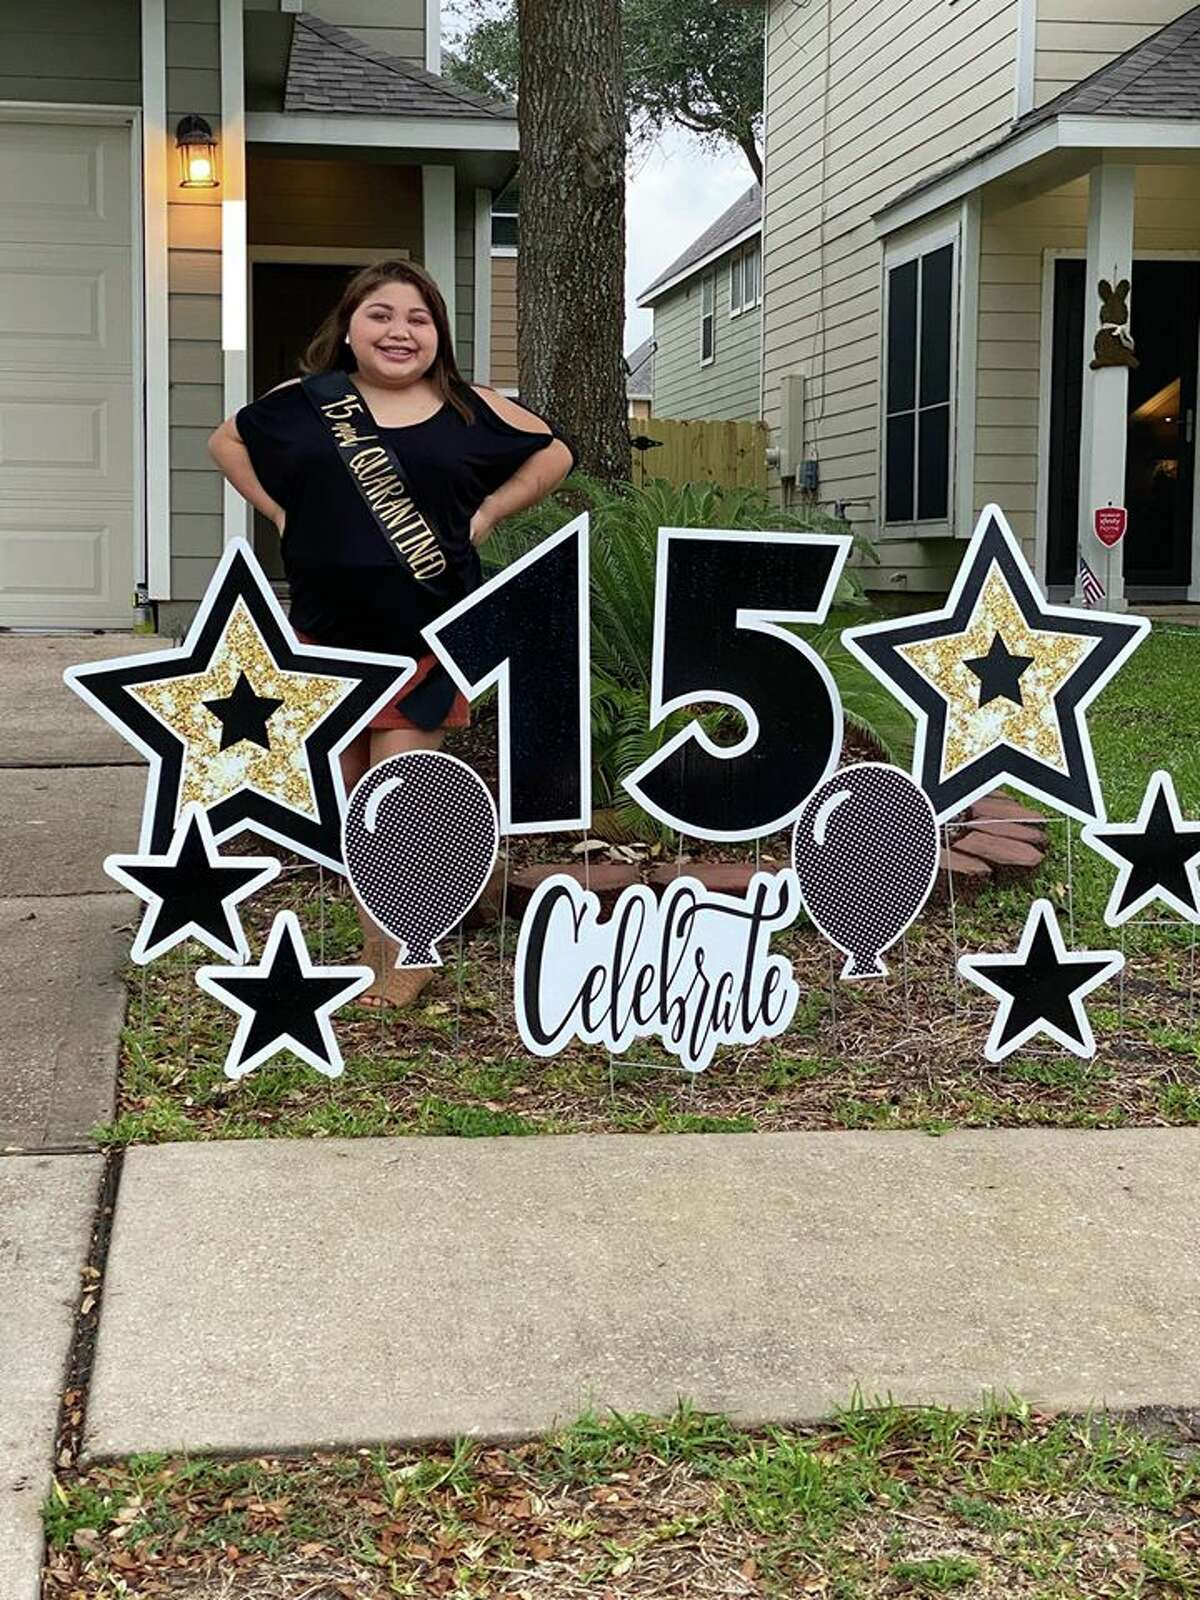 Avery Montalvo celebrated a milestone birthday as family and friends suprised her with a drive-by quinceañera parade.